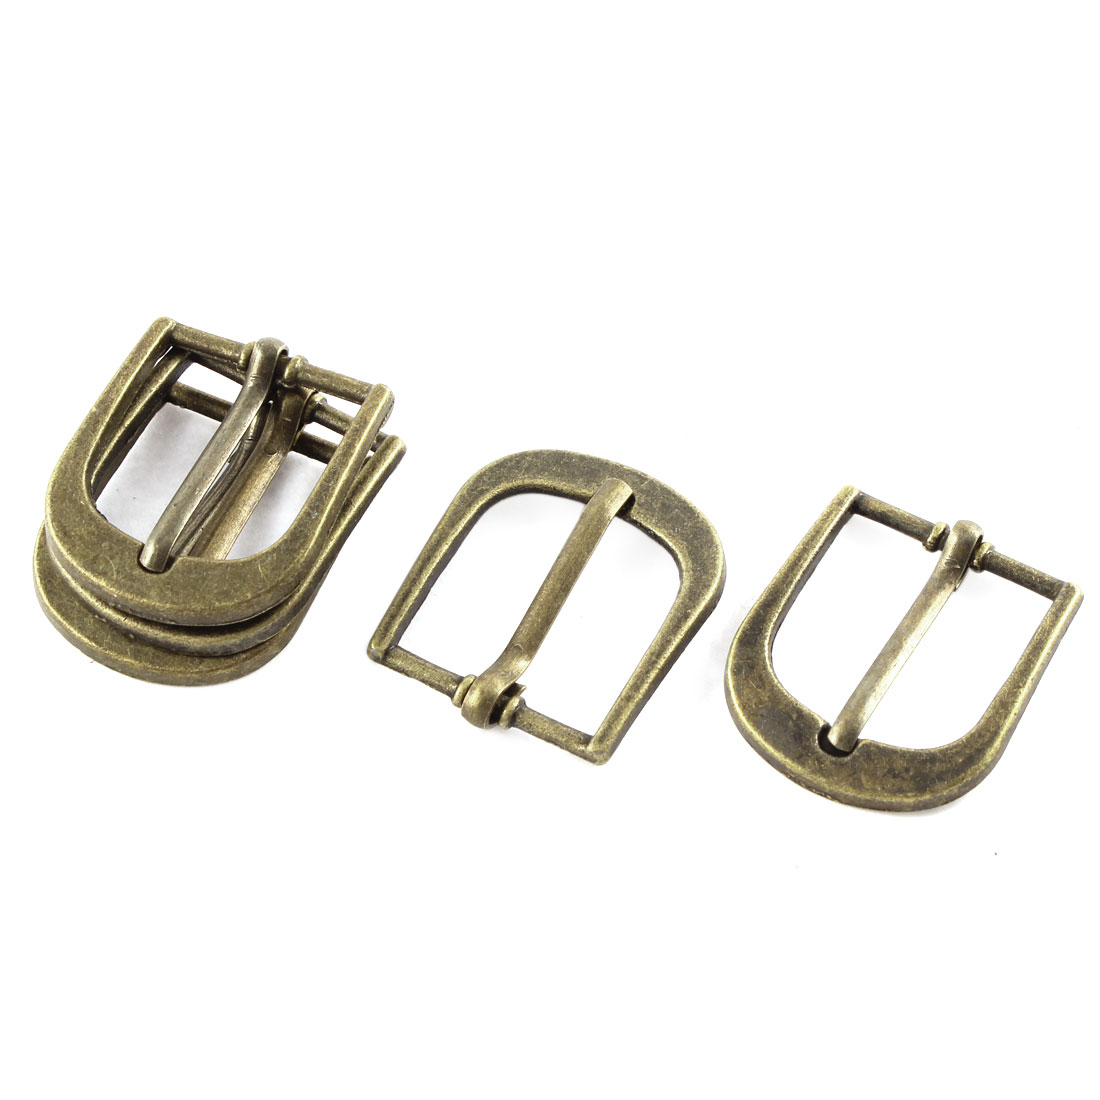 5pcs 29x25mm Bronze Tone Single Prong Horseshoe Belt Buckle